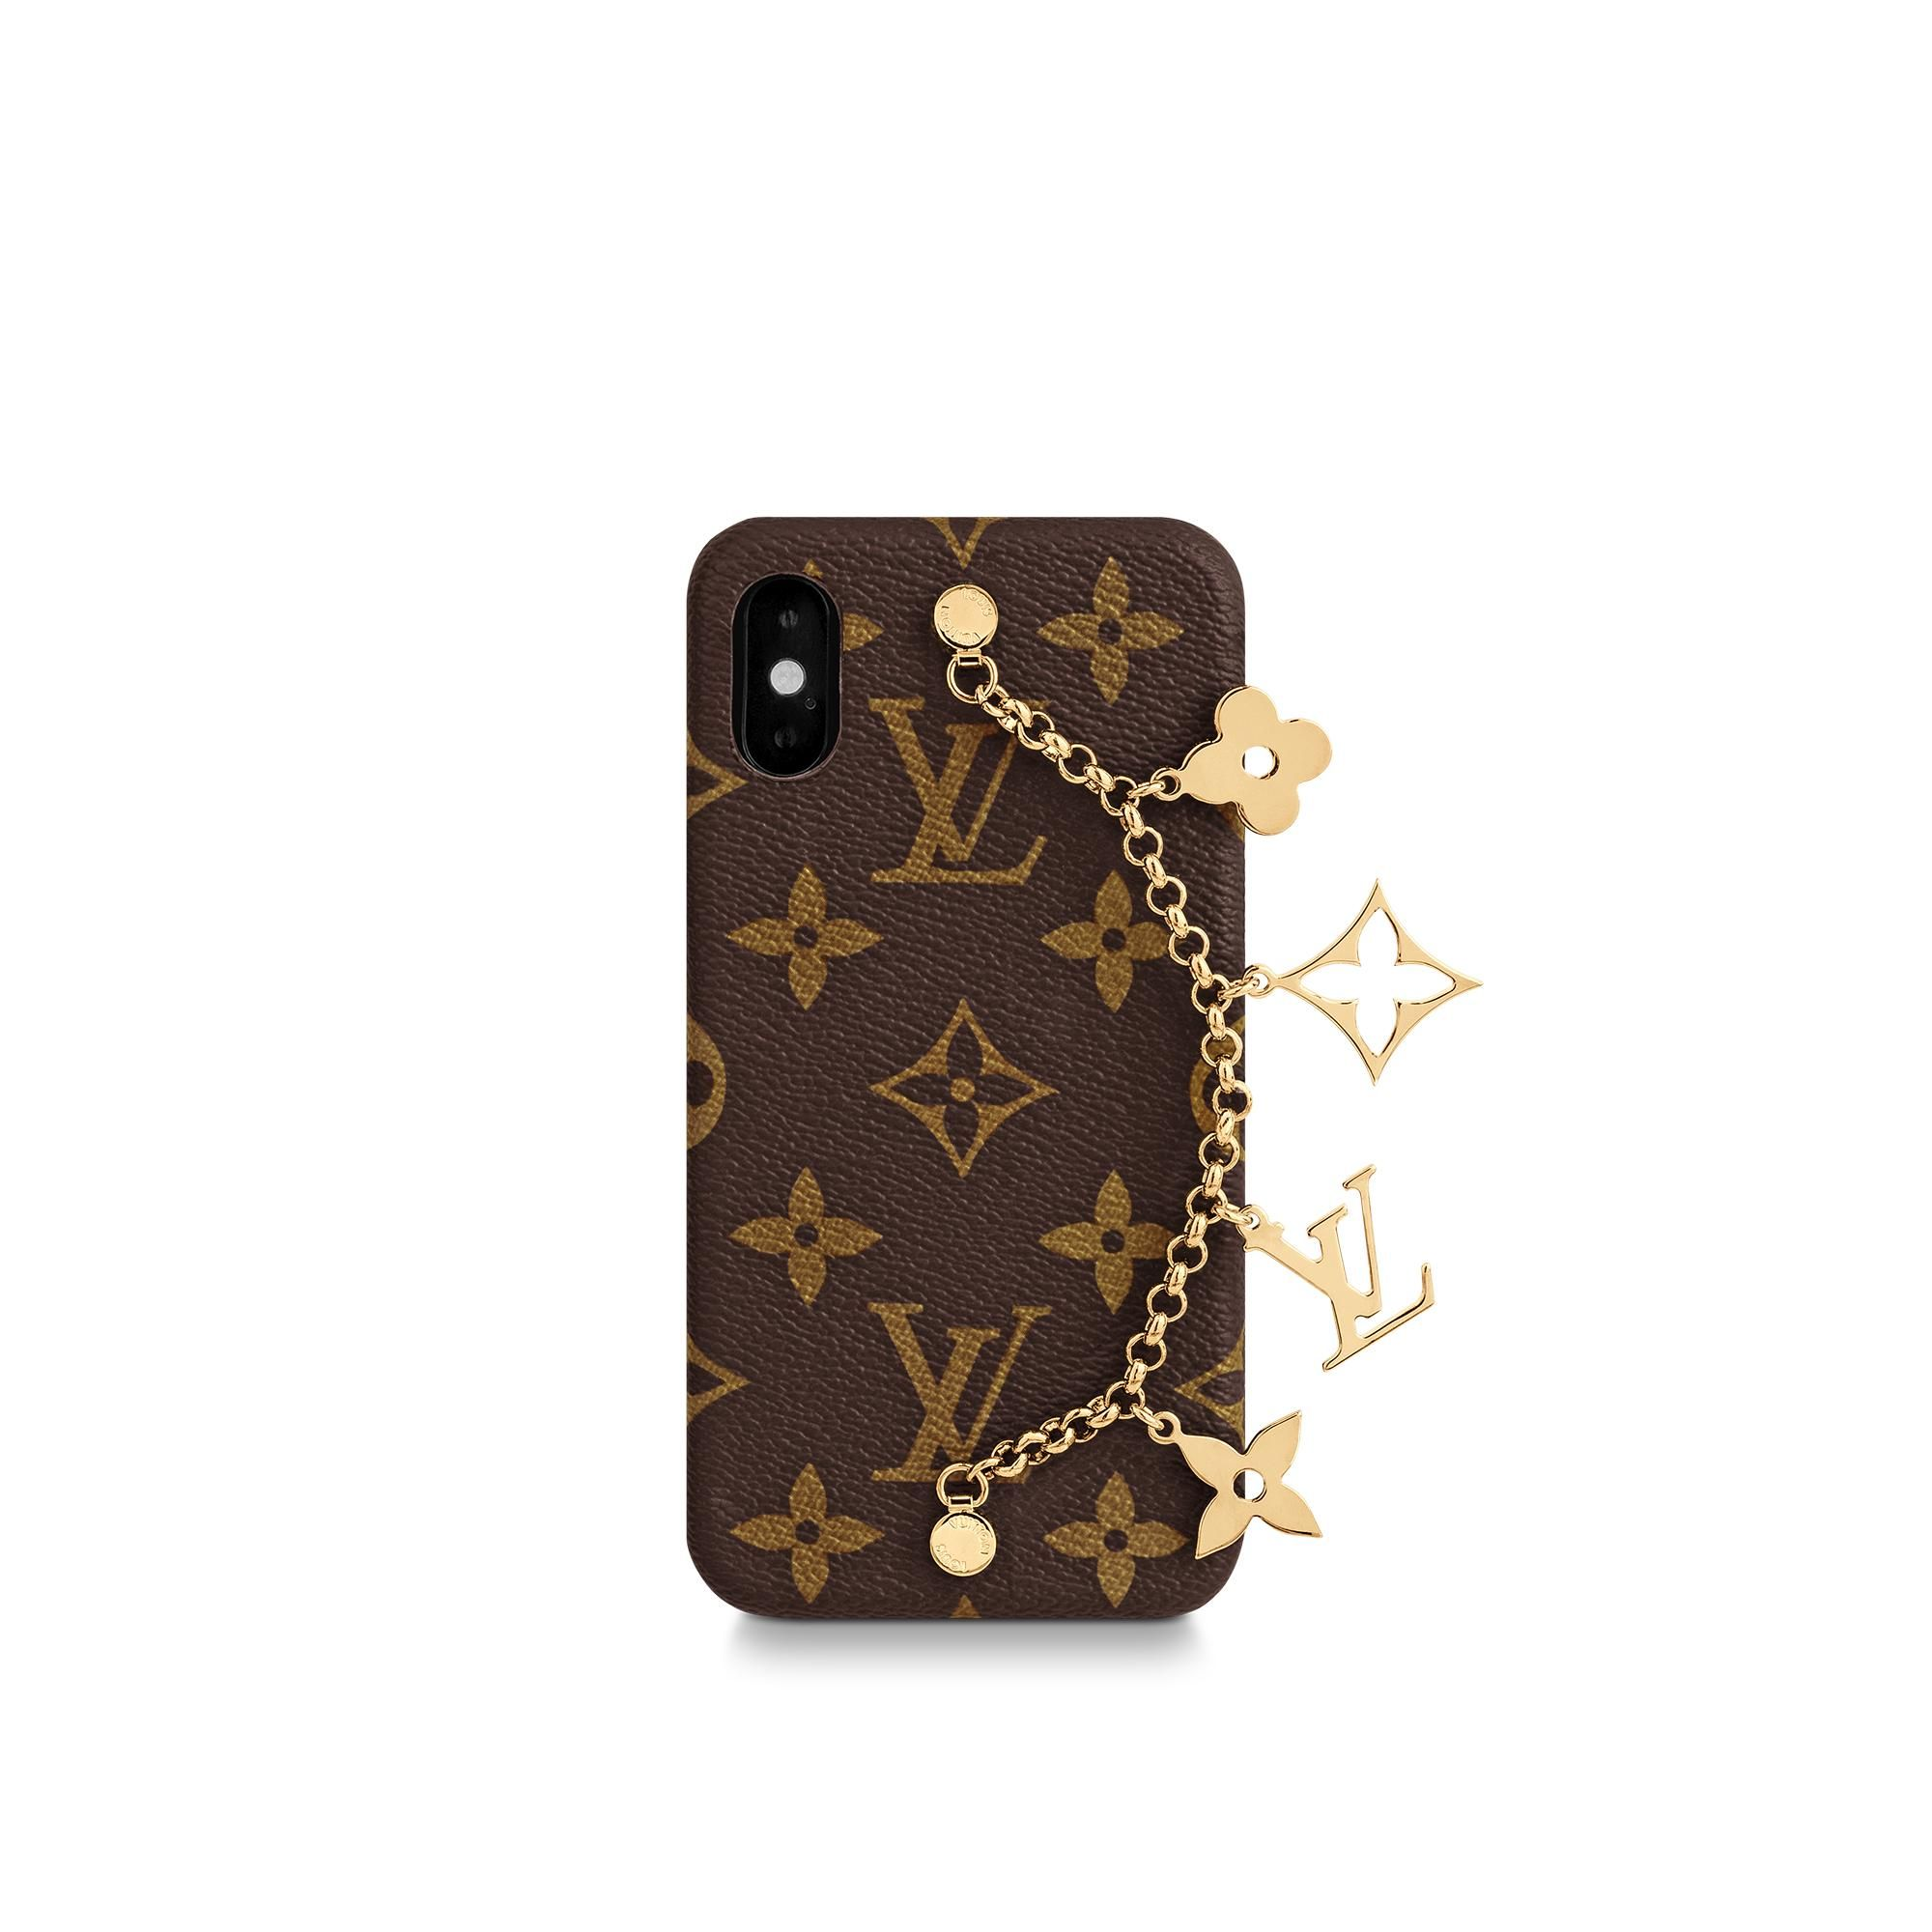 Products By Louis Vuitton Iphone X Xs Case Charms Louis Vuitton Phone Case Louis Vuitton Louis Vuitton Collection